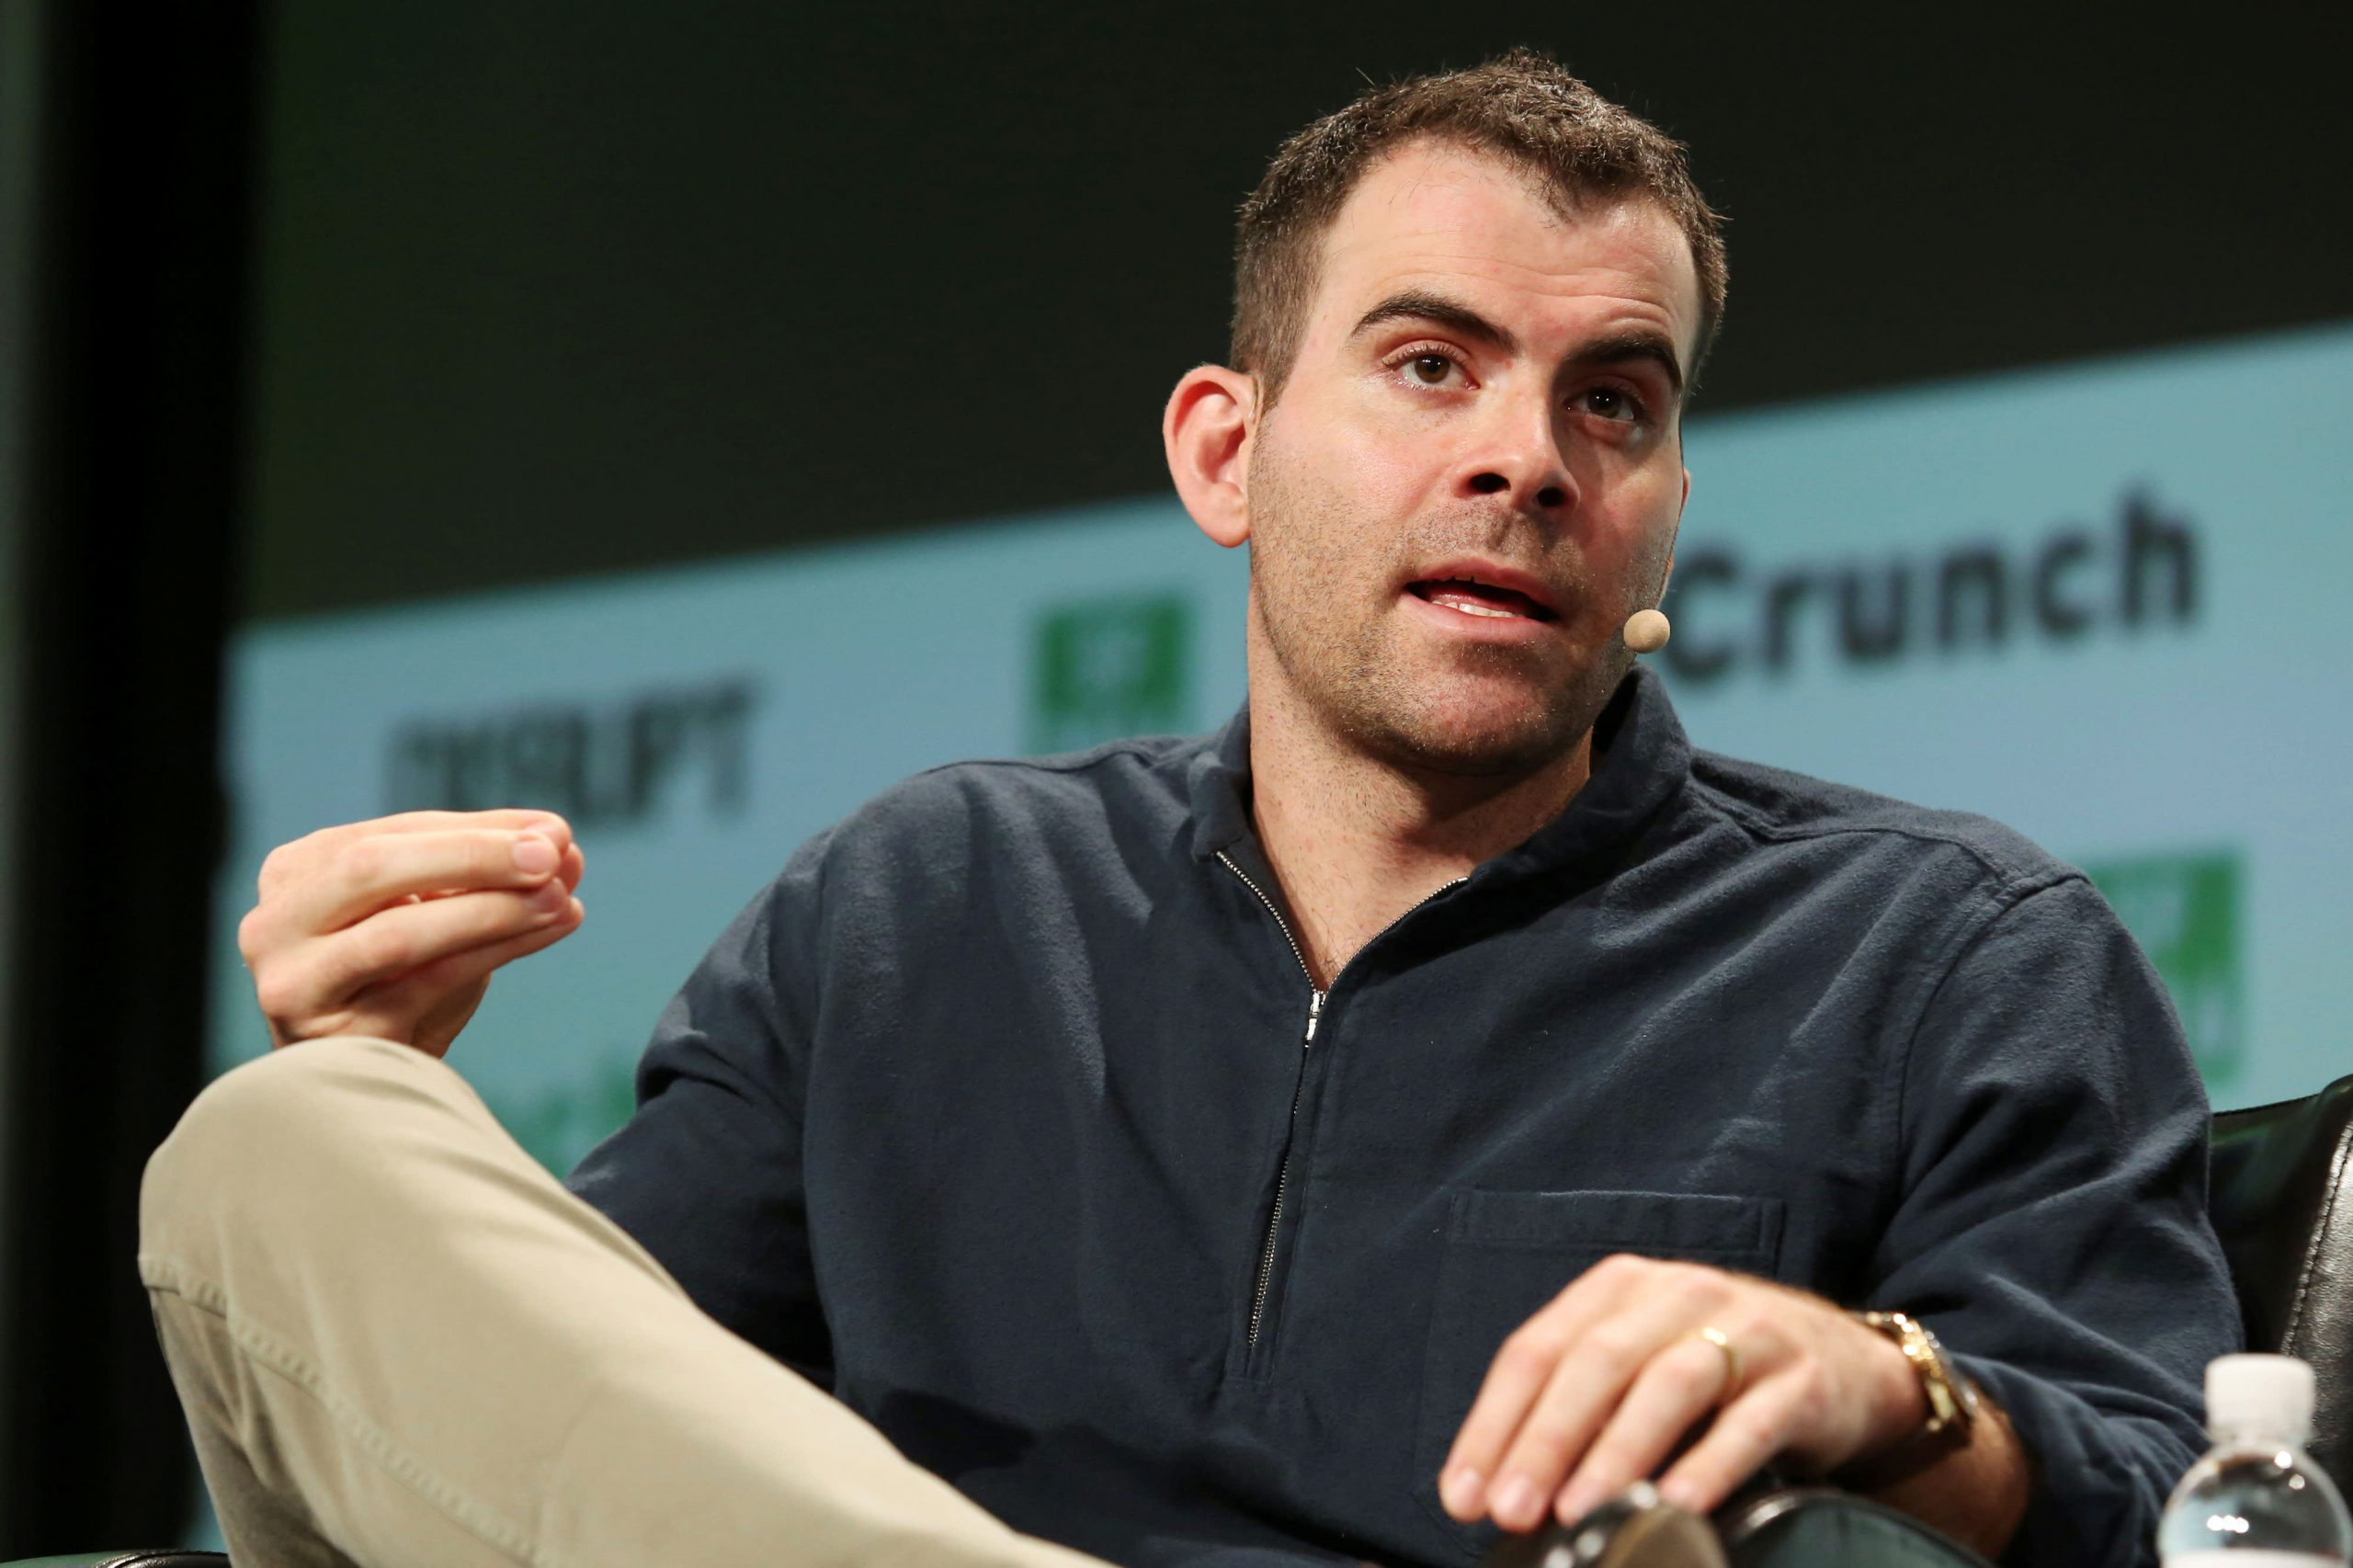 Instagram chief says TikTok is the most formidable competitor the company has ever seen